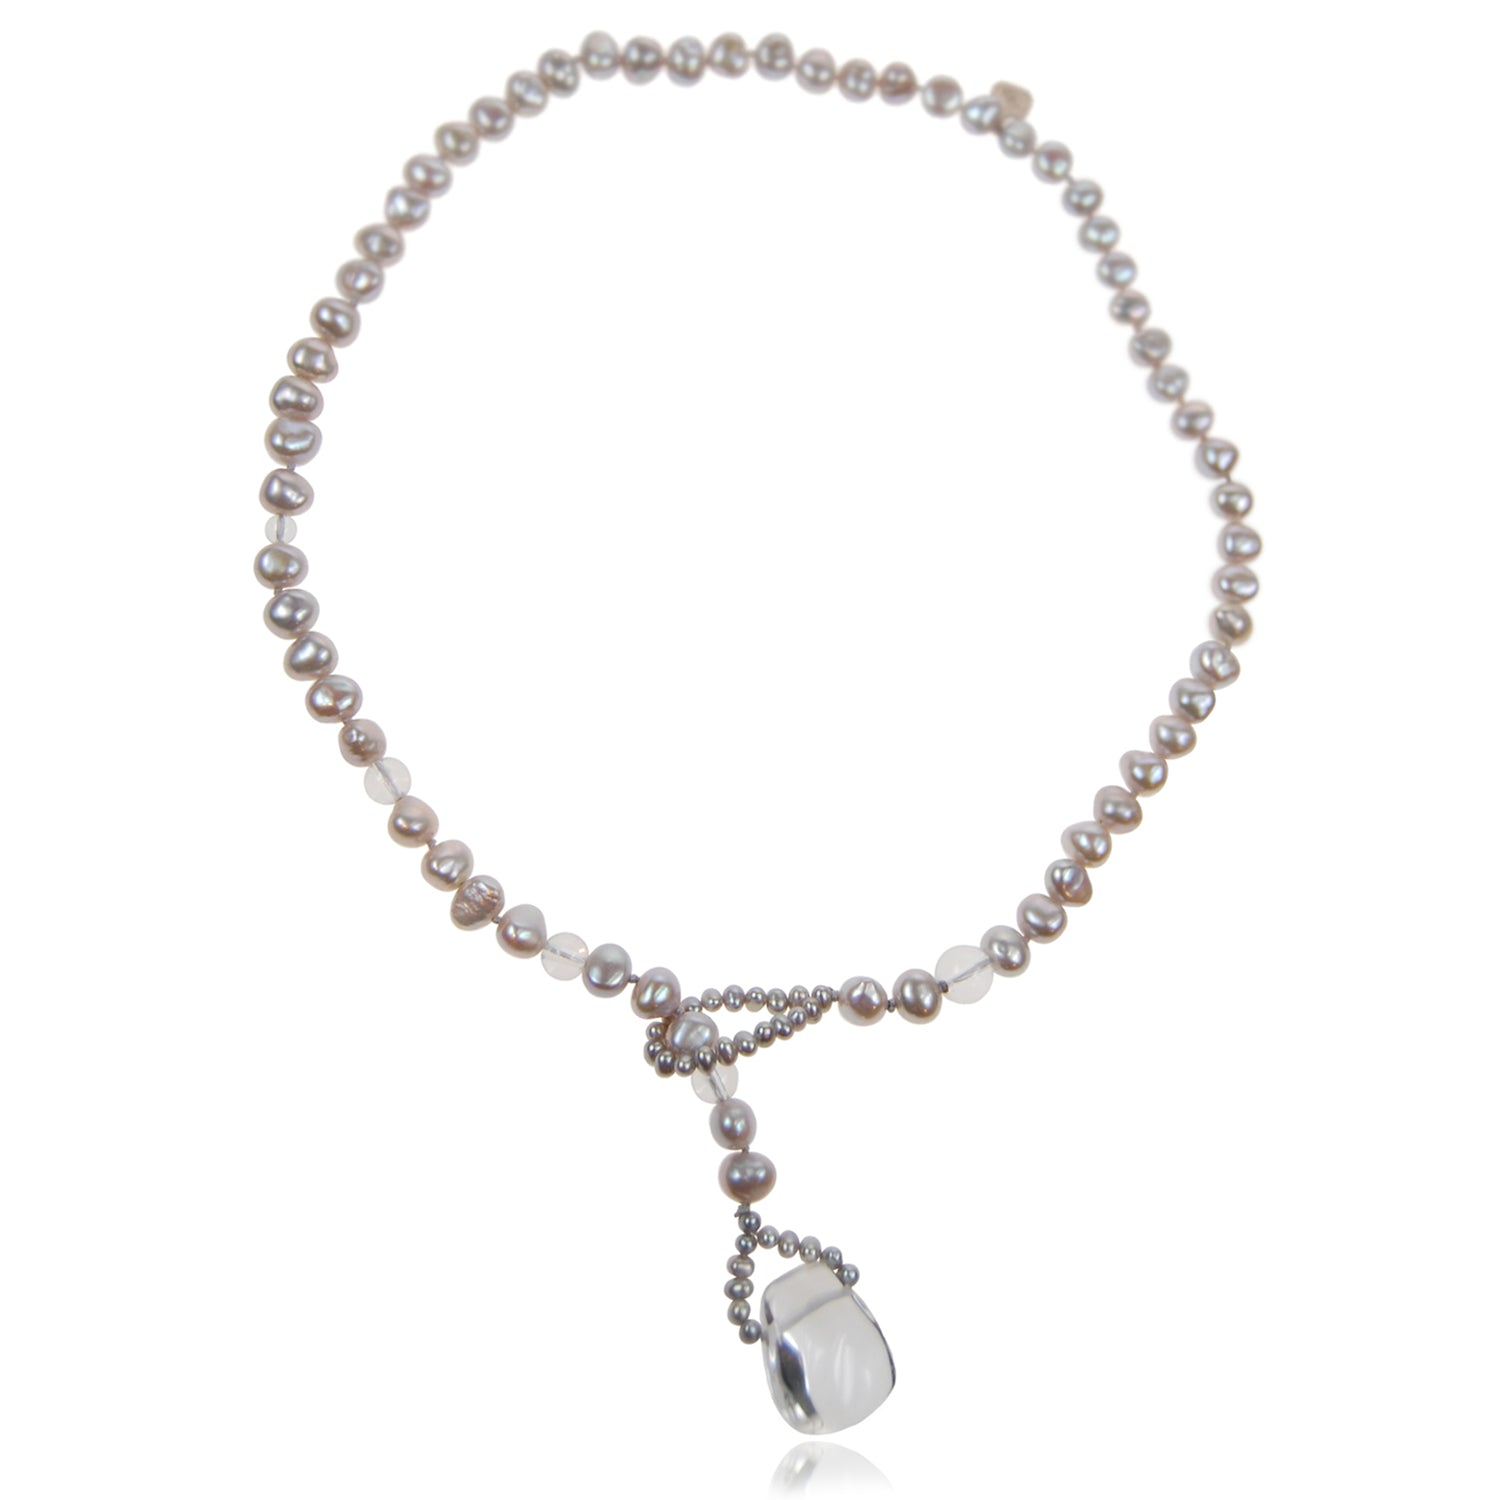 Biwa Pearl and Rock Crystal Short Lasso Necklace in Grey